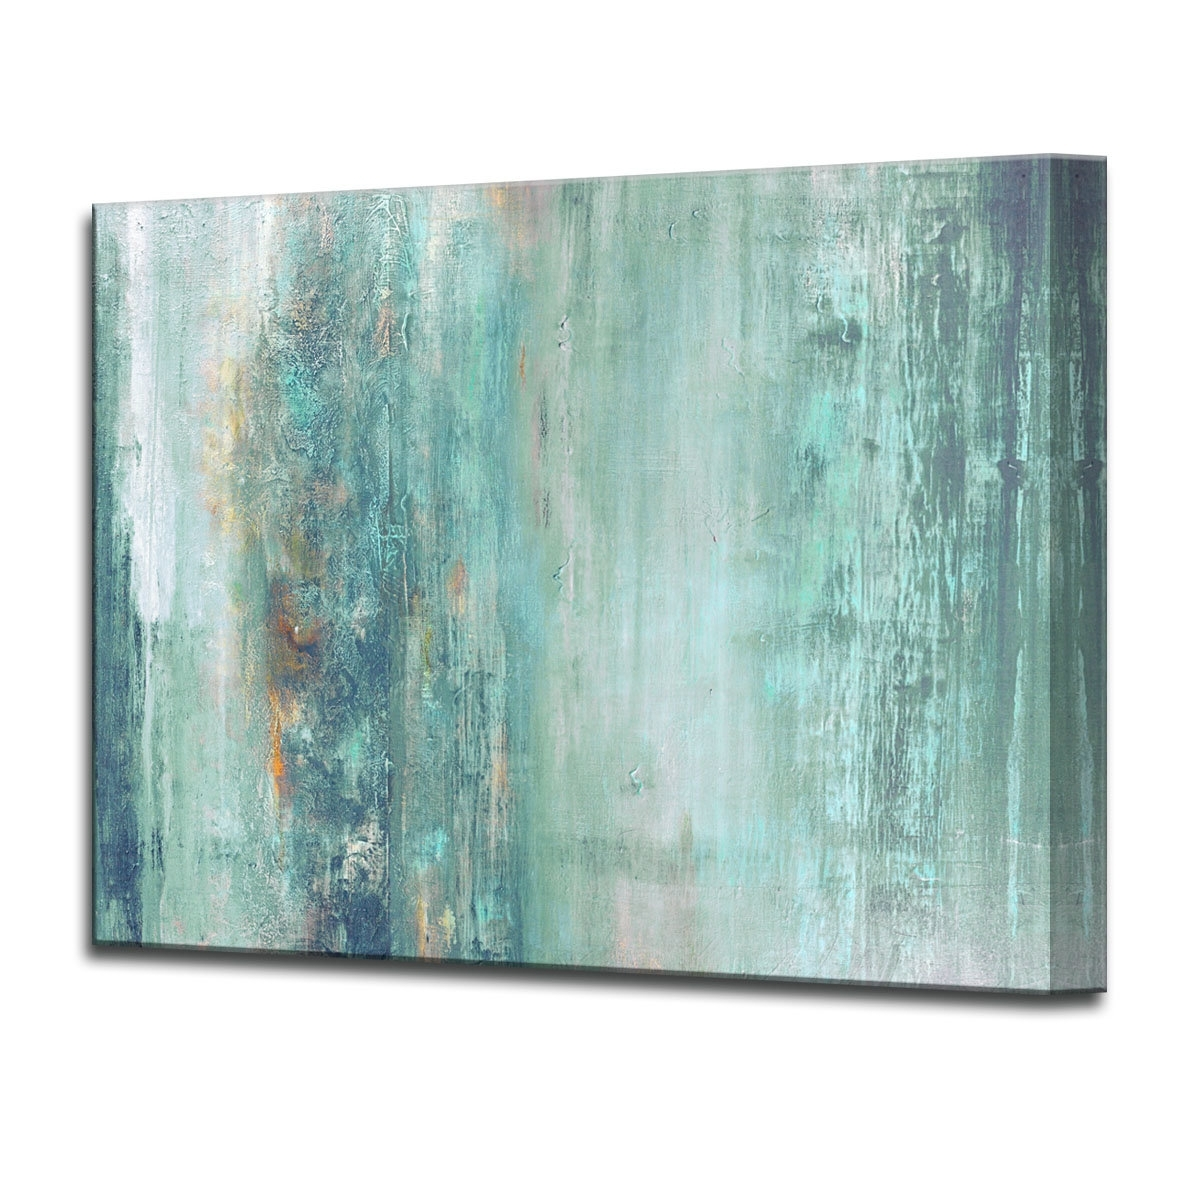 Teal And Green Wall Art Regarding Latest Blue Wall Art You'll Love (View 12 of 15)